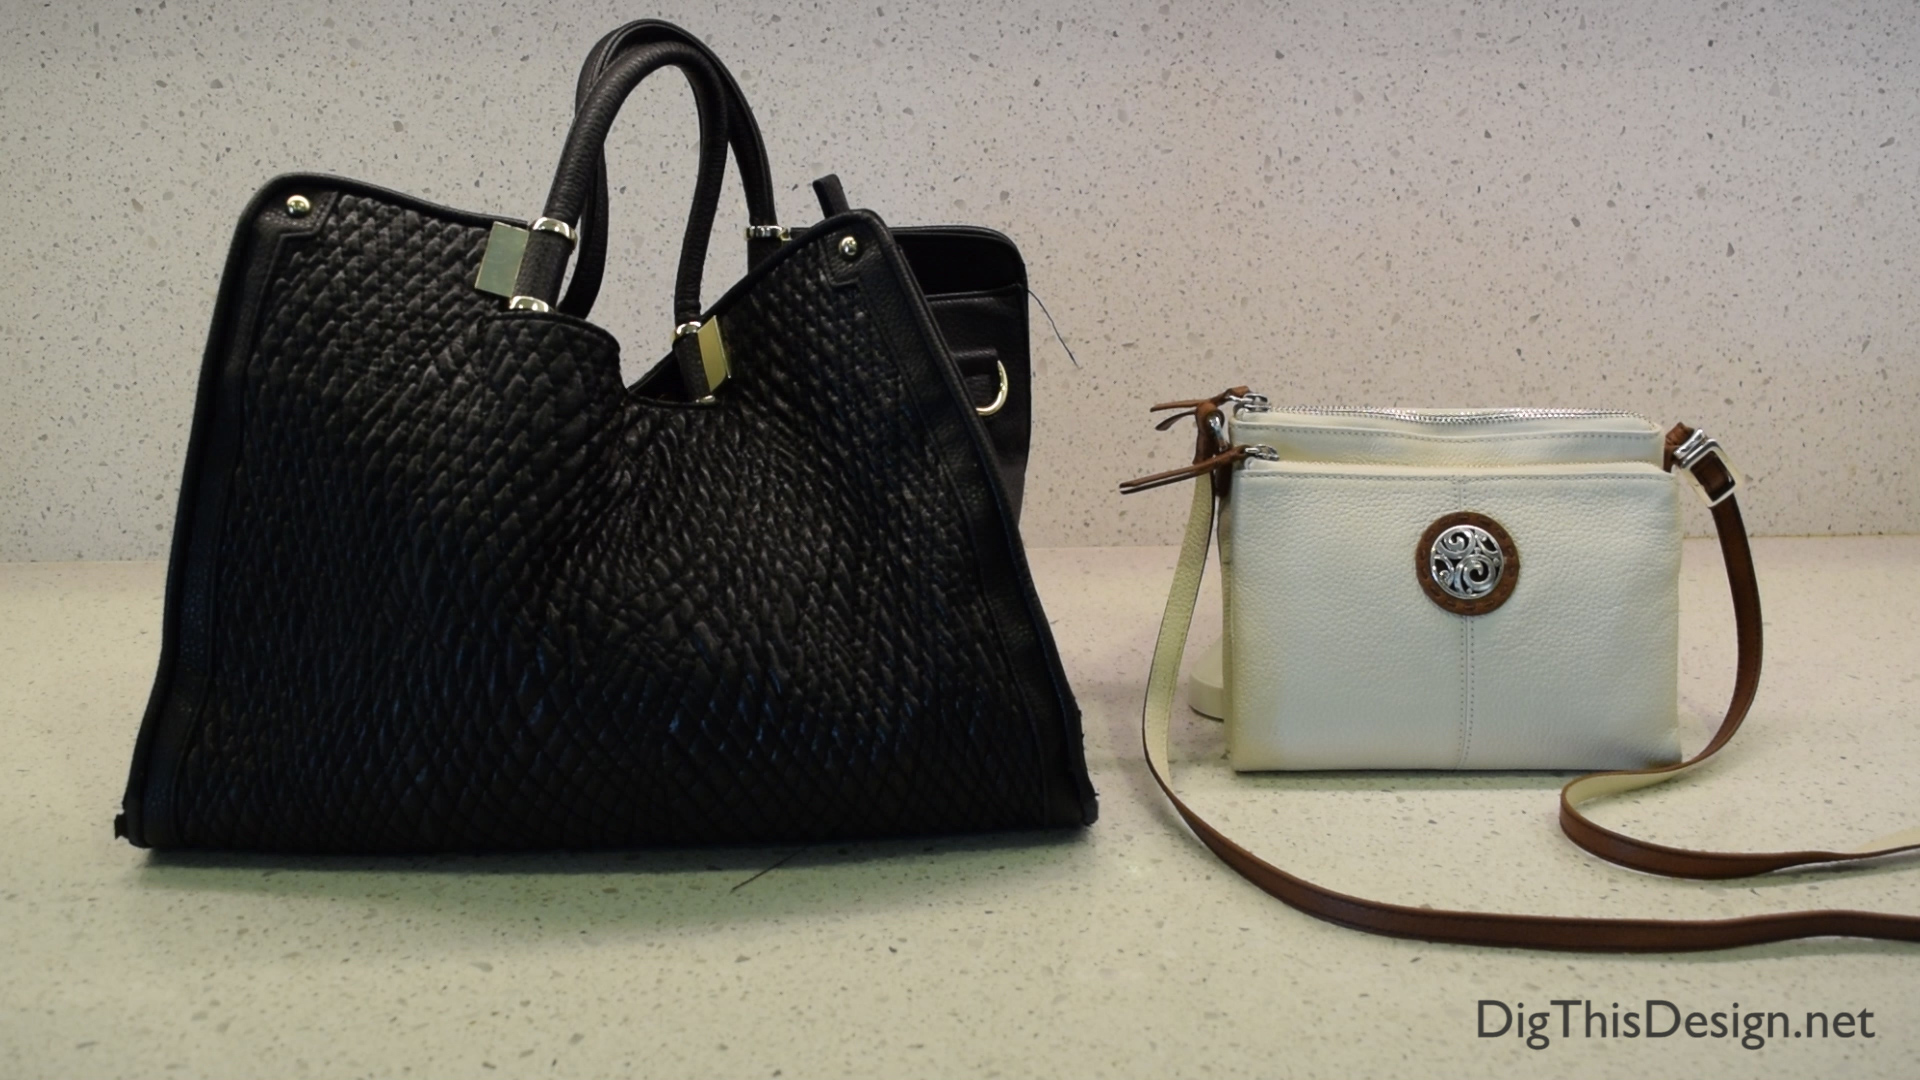 two handbags side by side comparing size after using the wocket smart wallet